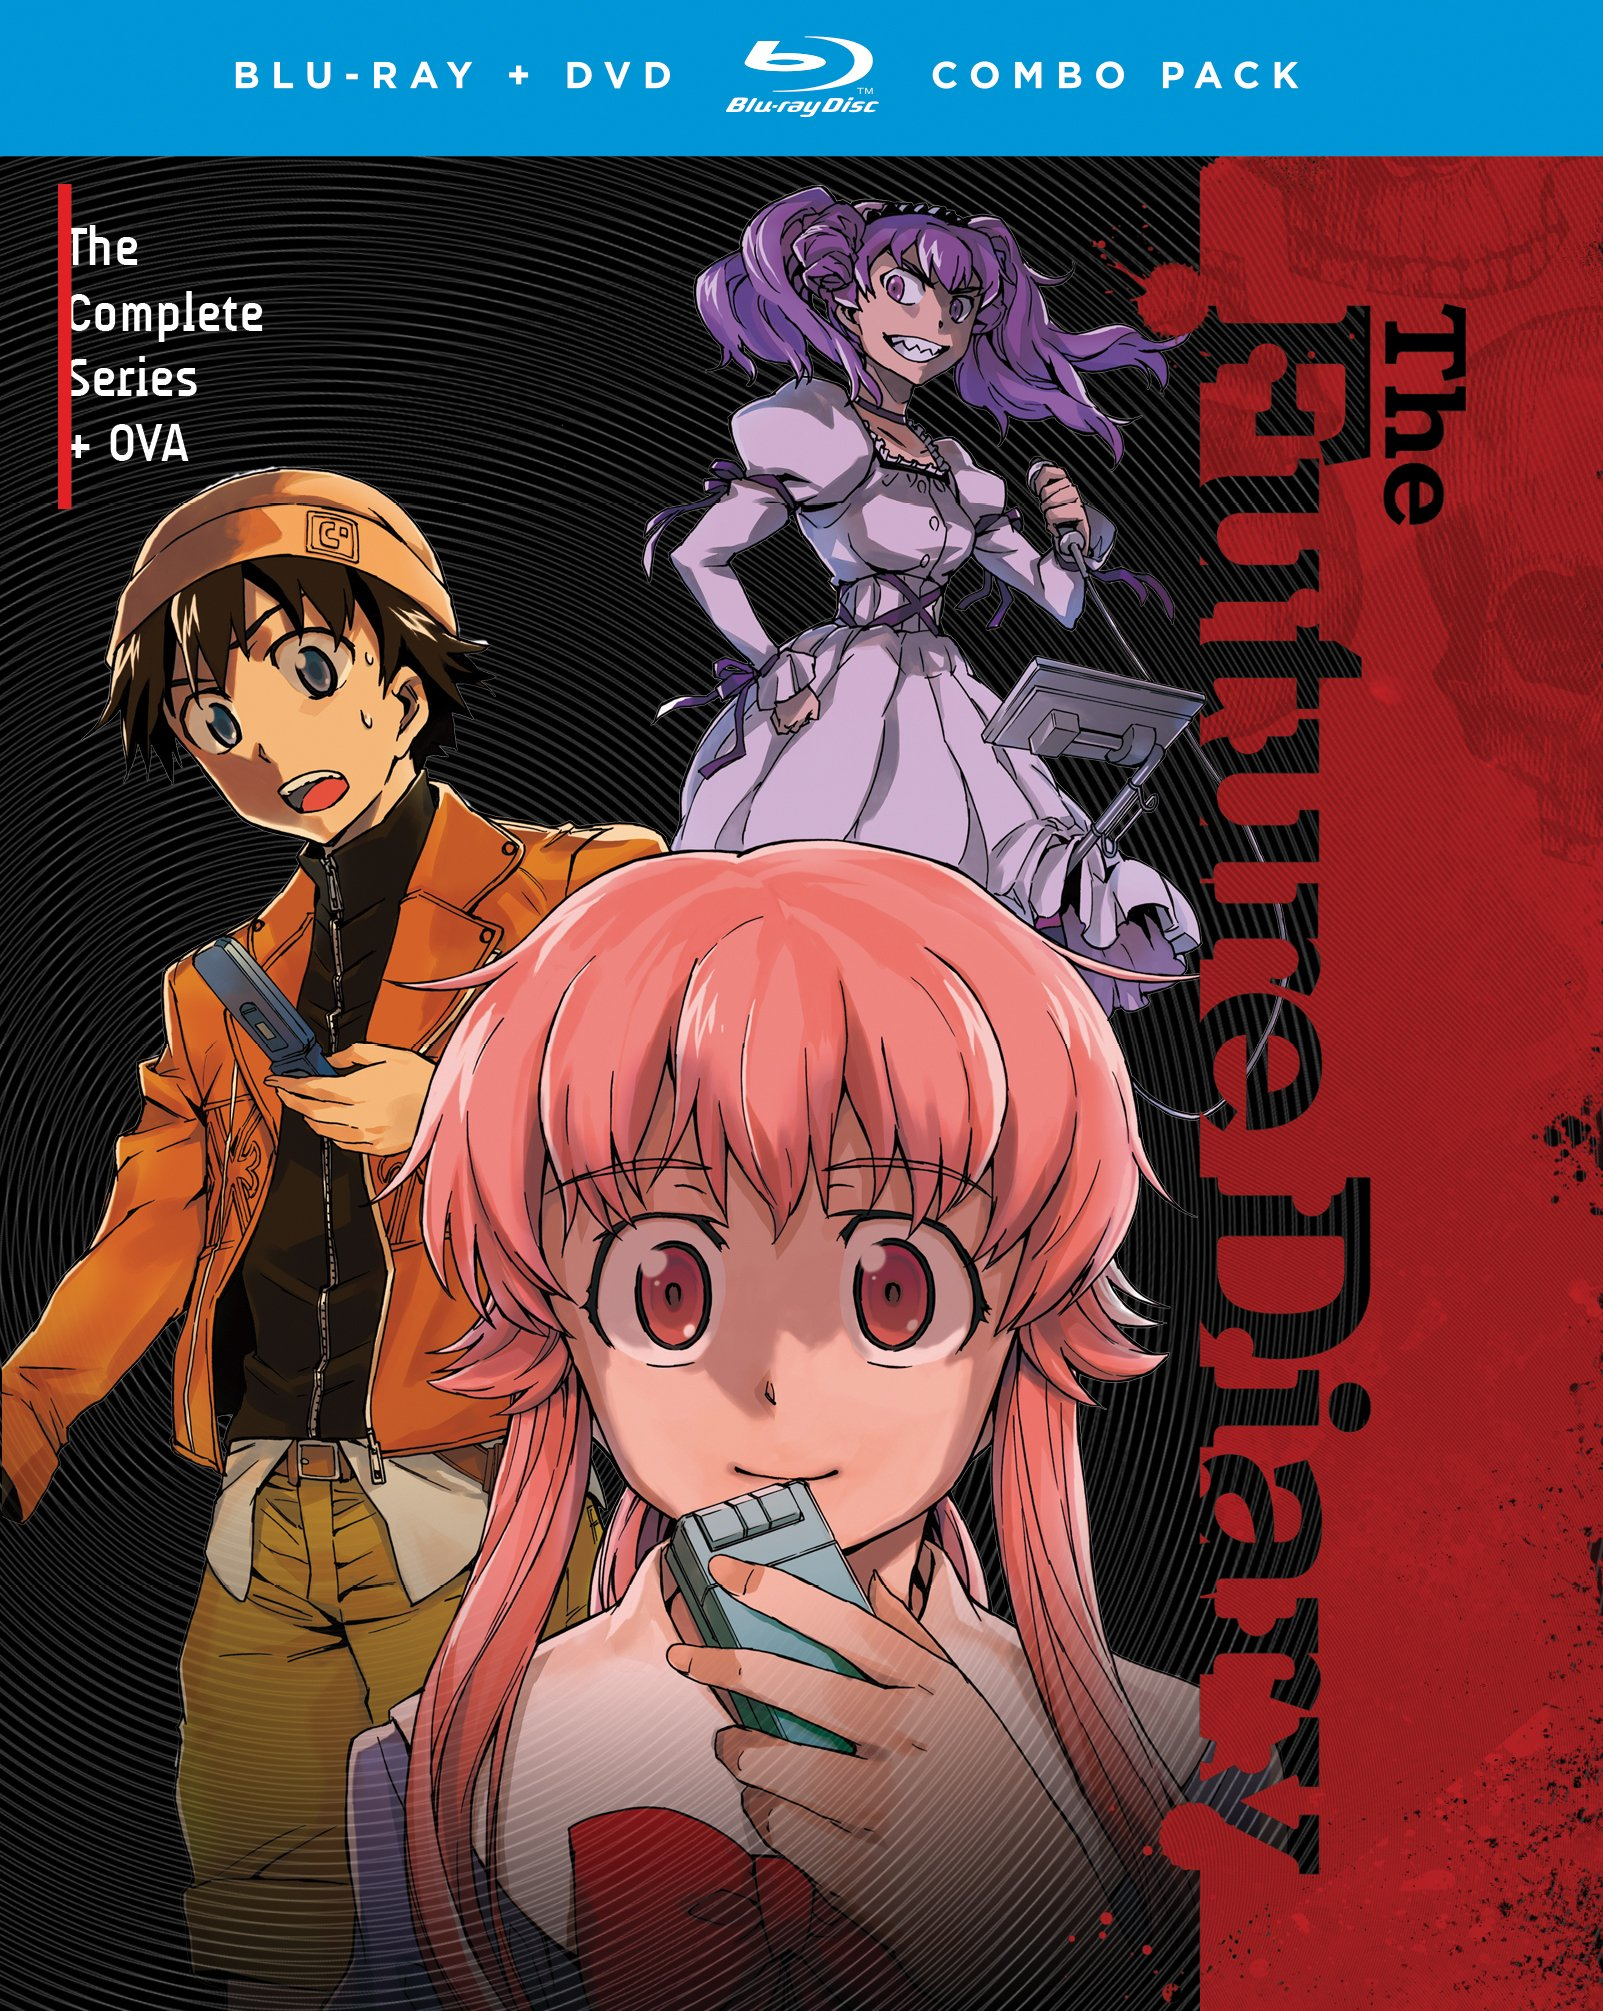 Future Diary: The Complete Series + OVA [Blu-ray]